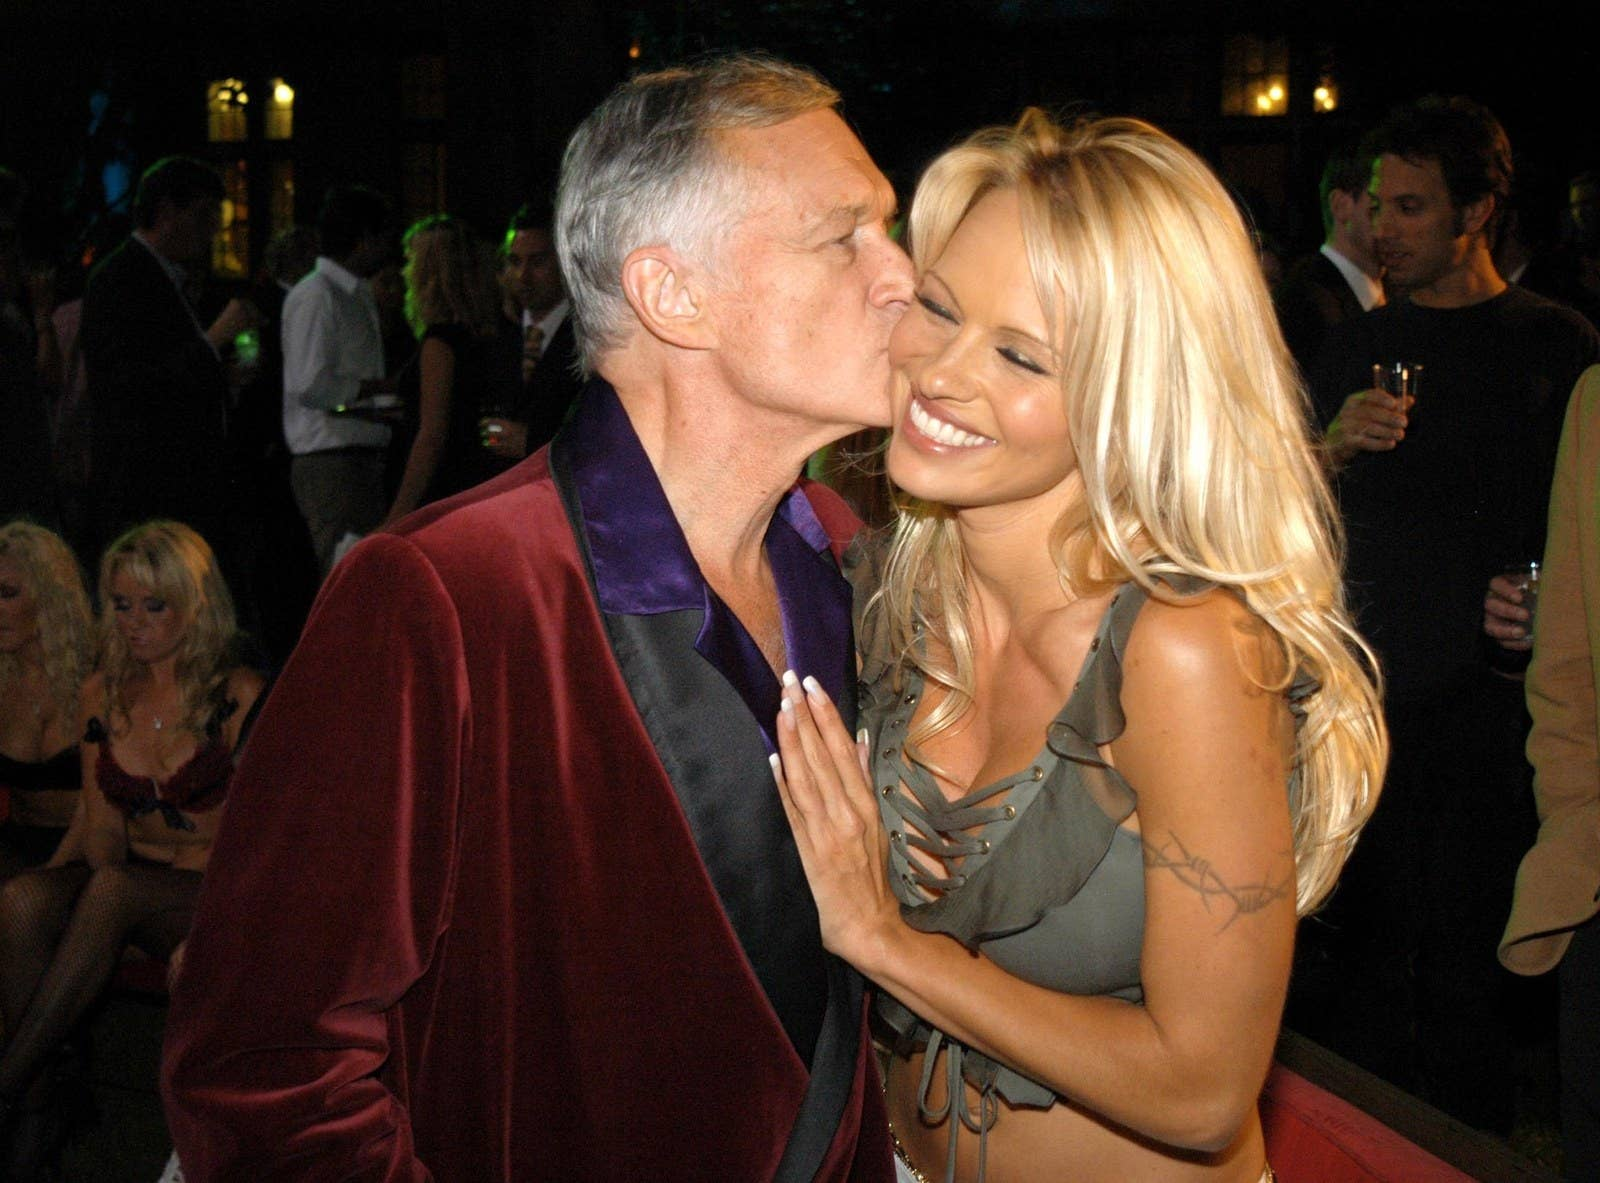 Hugh Hefner shares a moment with Pamela Anderson during the launch party for Spike TV at The Playboy Mansion in 2003.